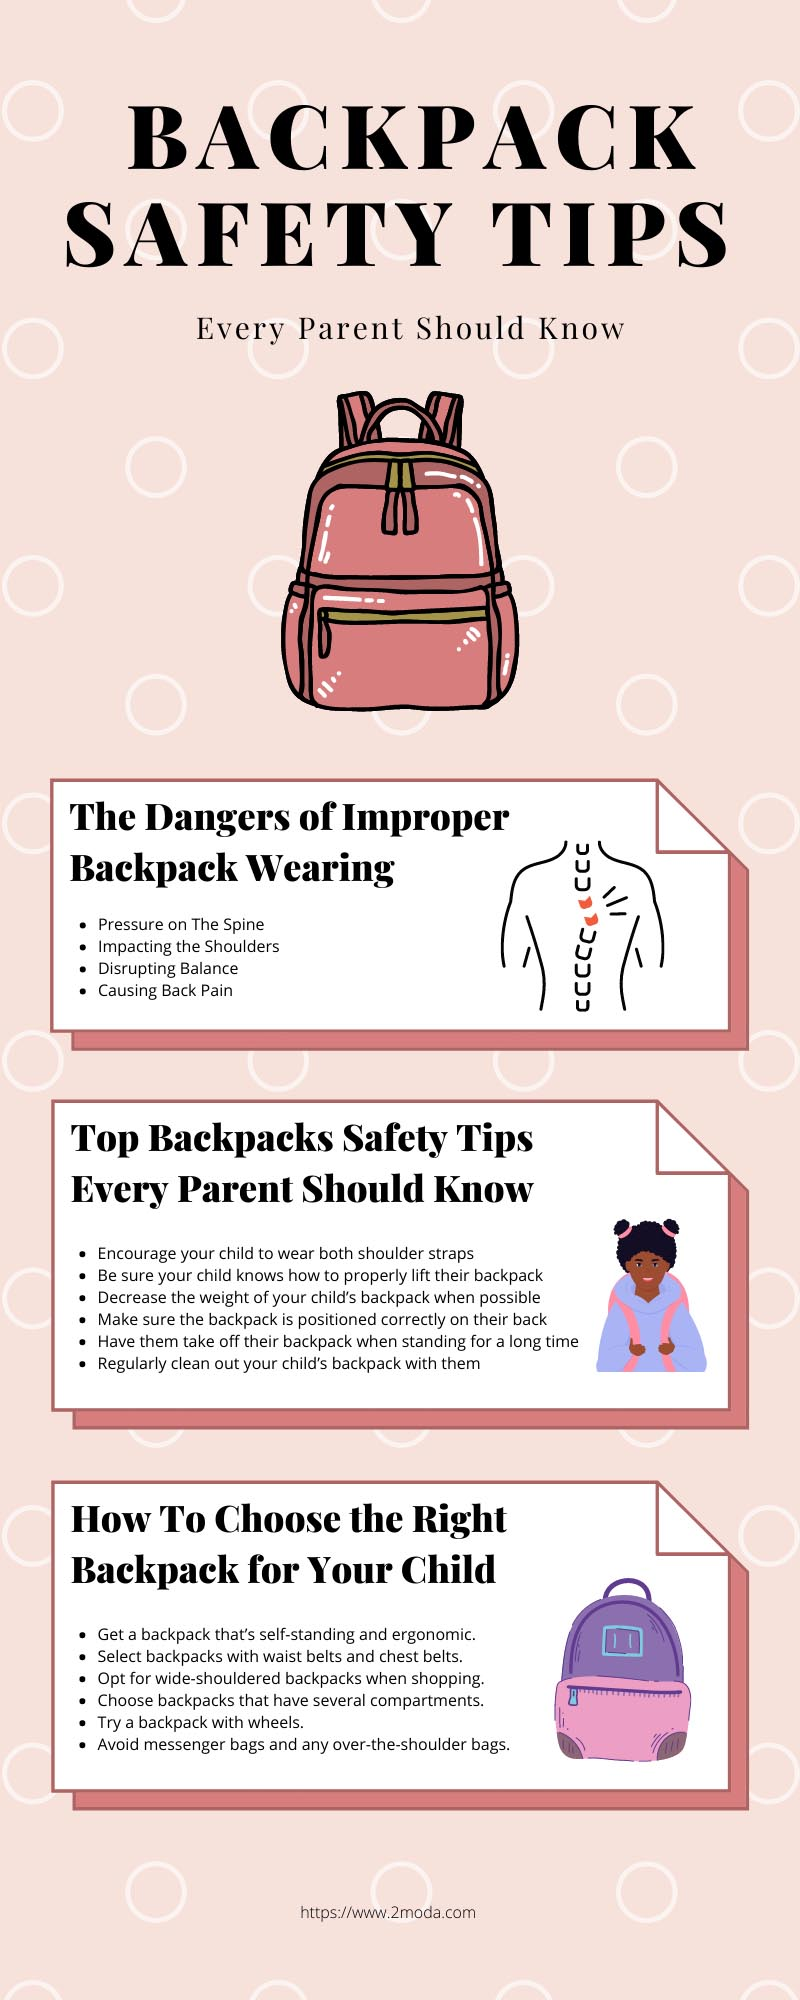 Top Backpack Safety Tips Every Parent Should Know